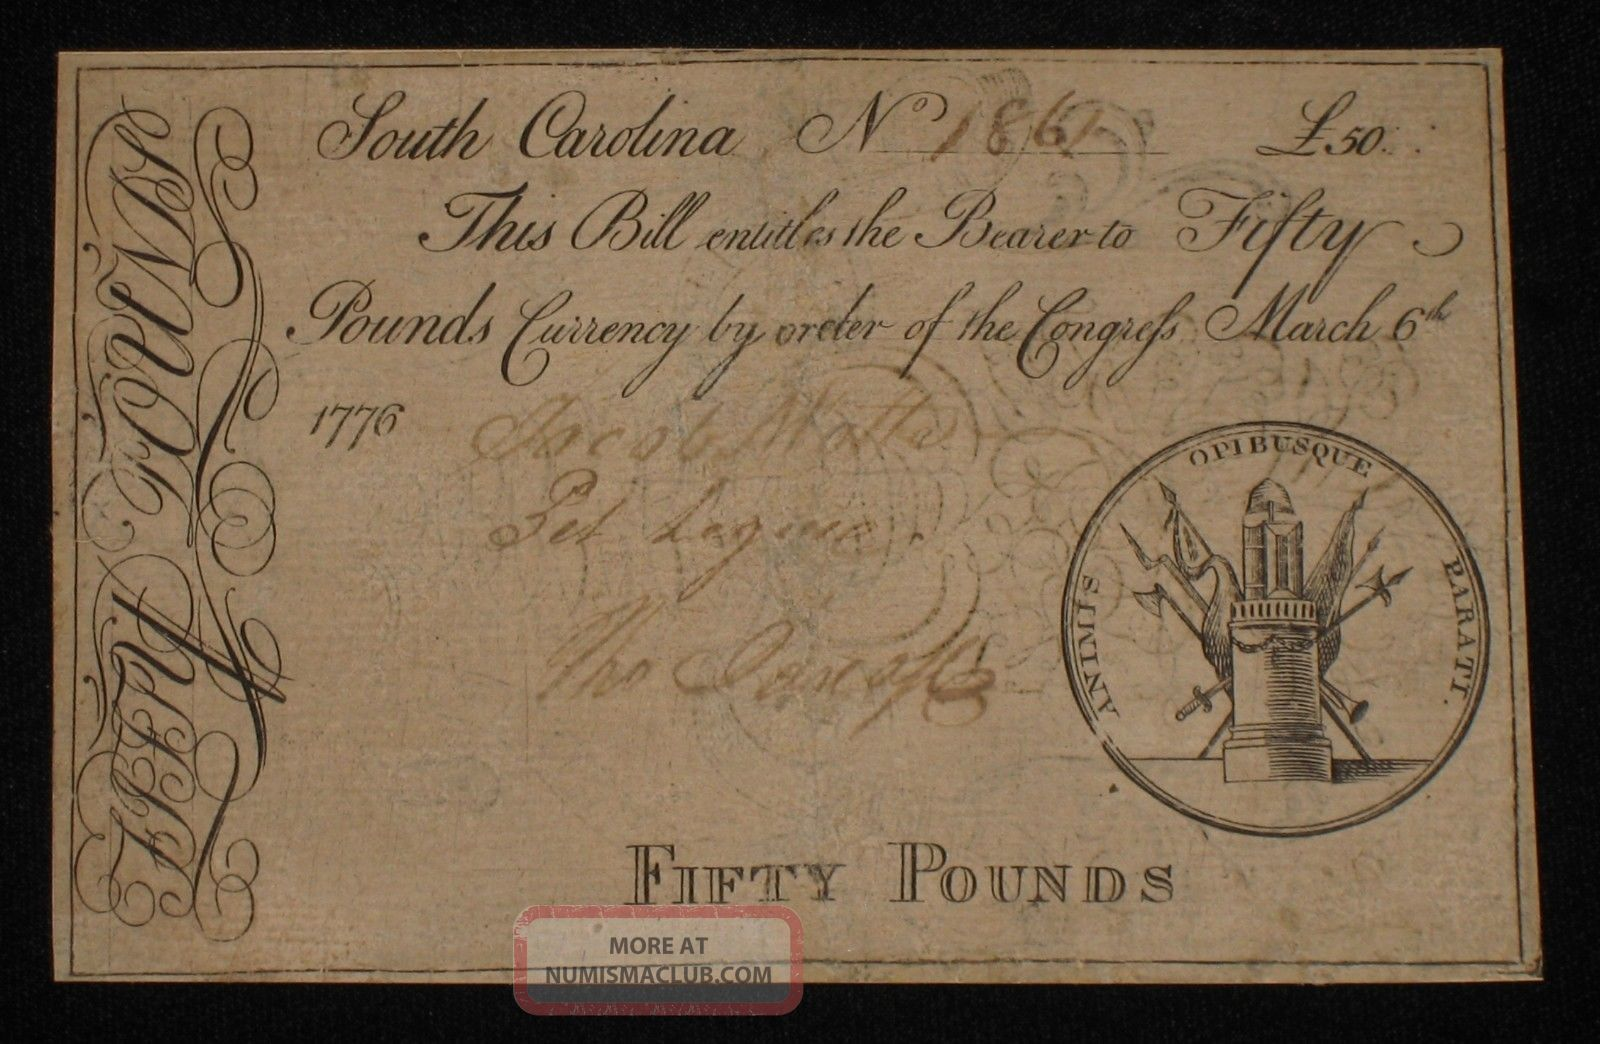 Us Sc Colonial Currency - 50 Pounds - Mar 6,  1776 Very Rare (cc - 122) Paper Money: US photo